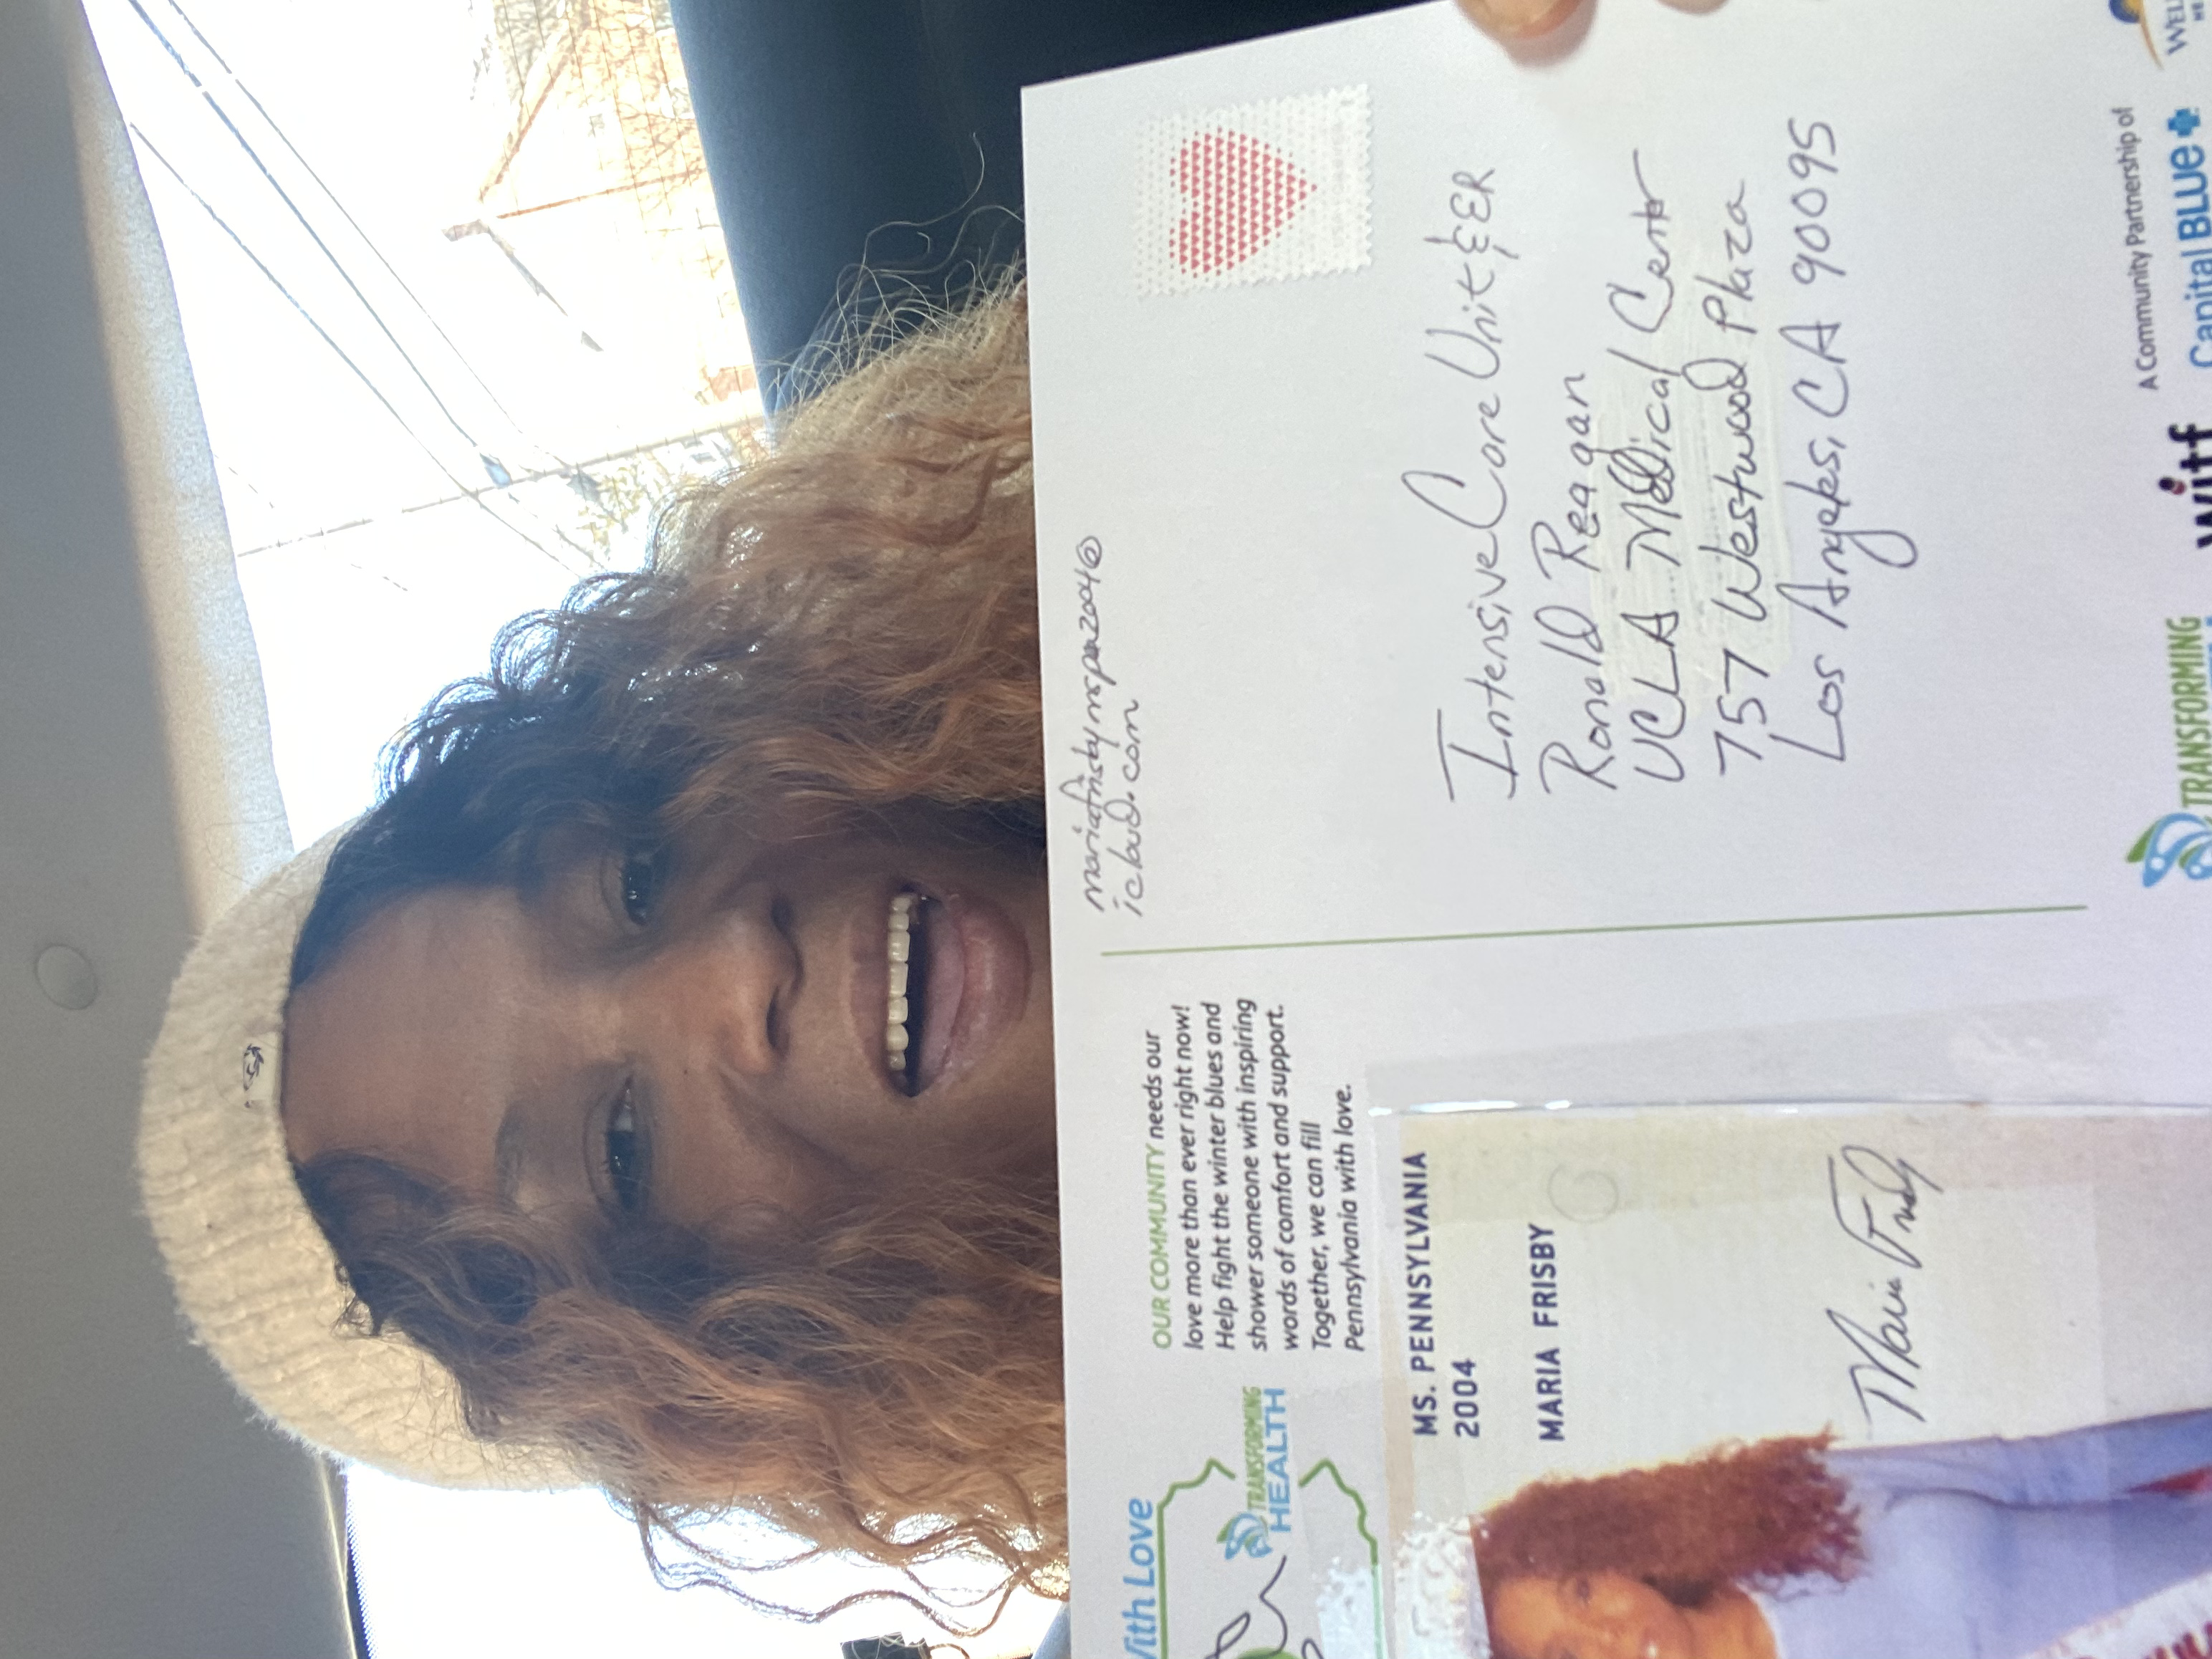 Maria showing another postcard which was sent to a hospital in Los Angeles CA